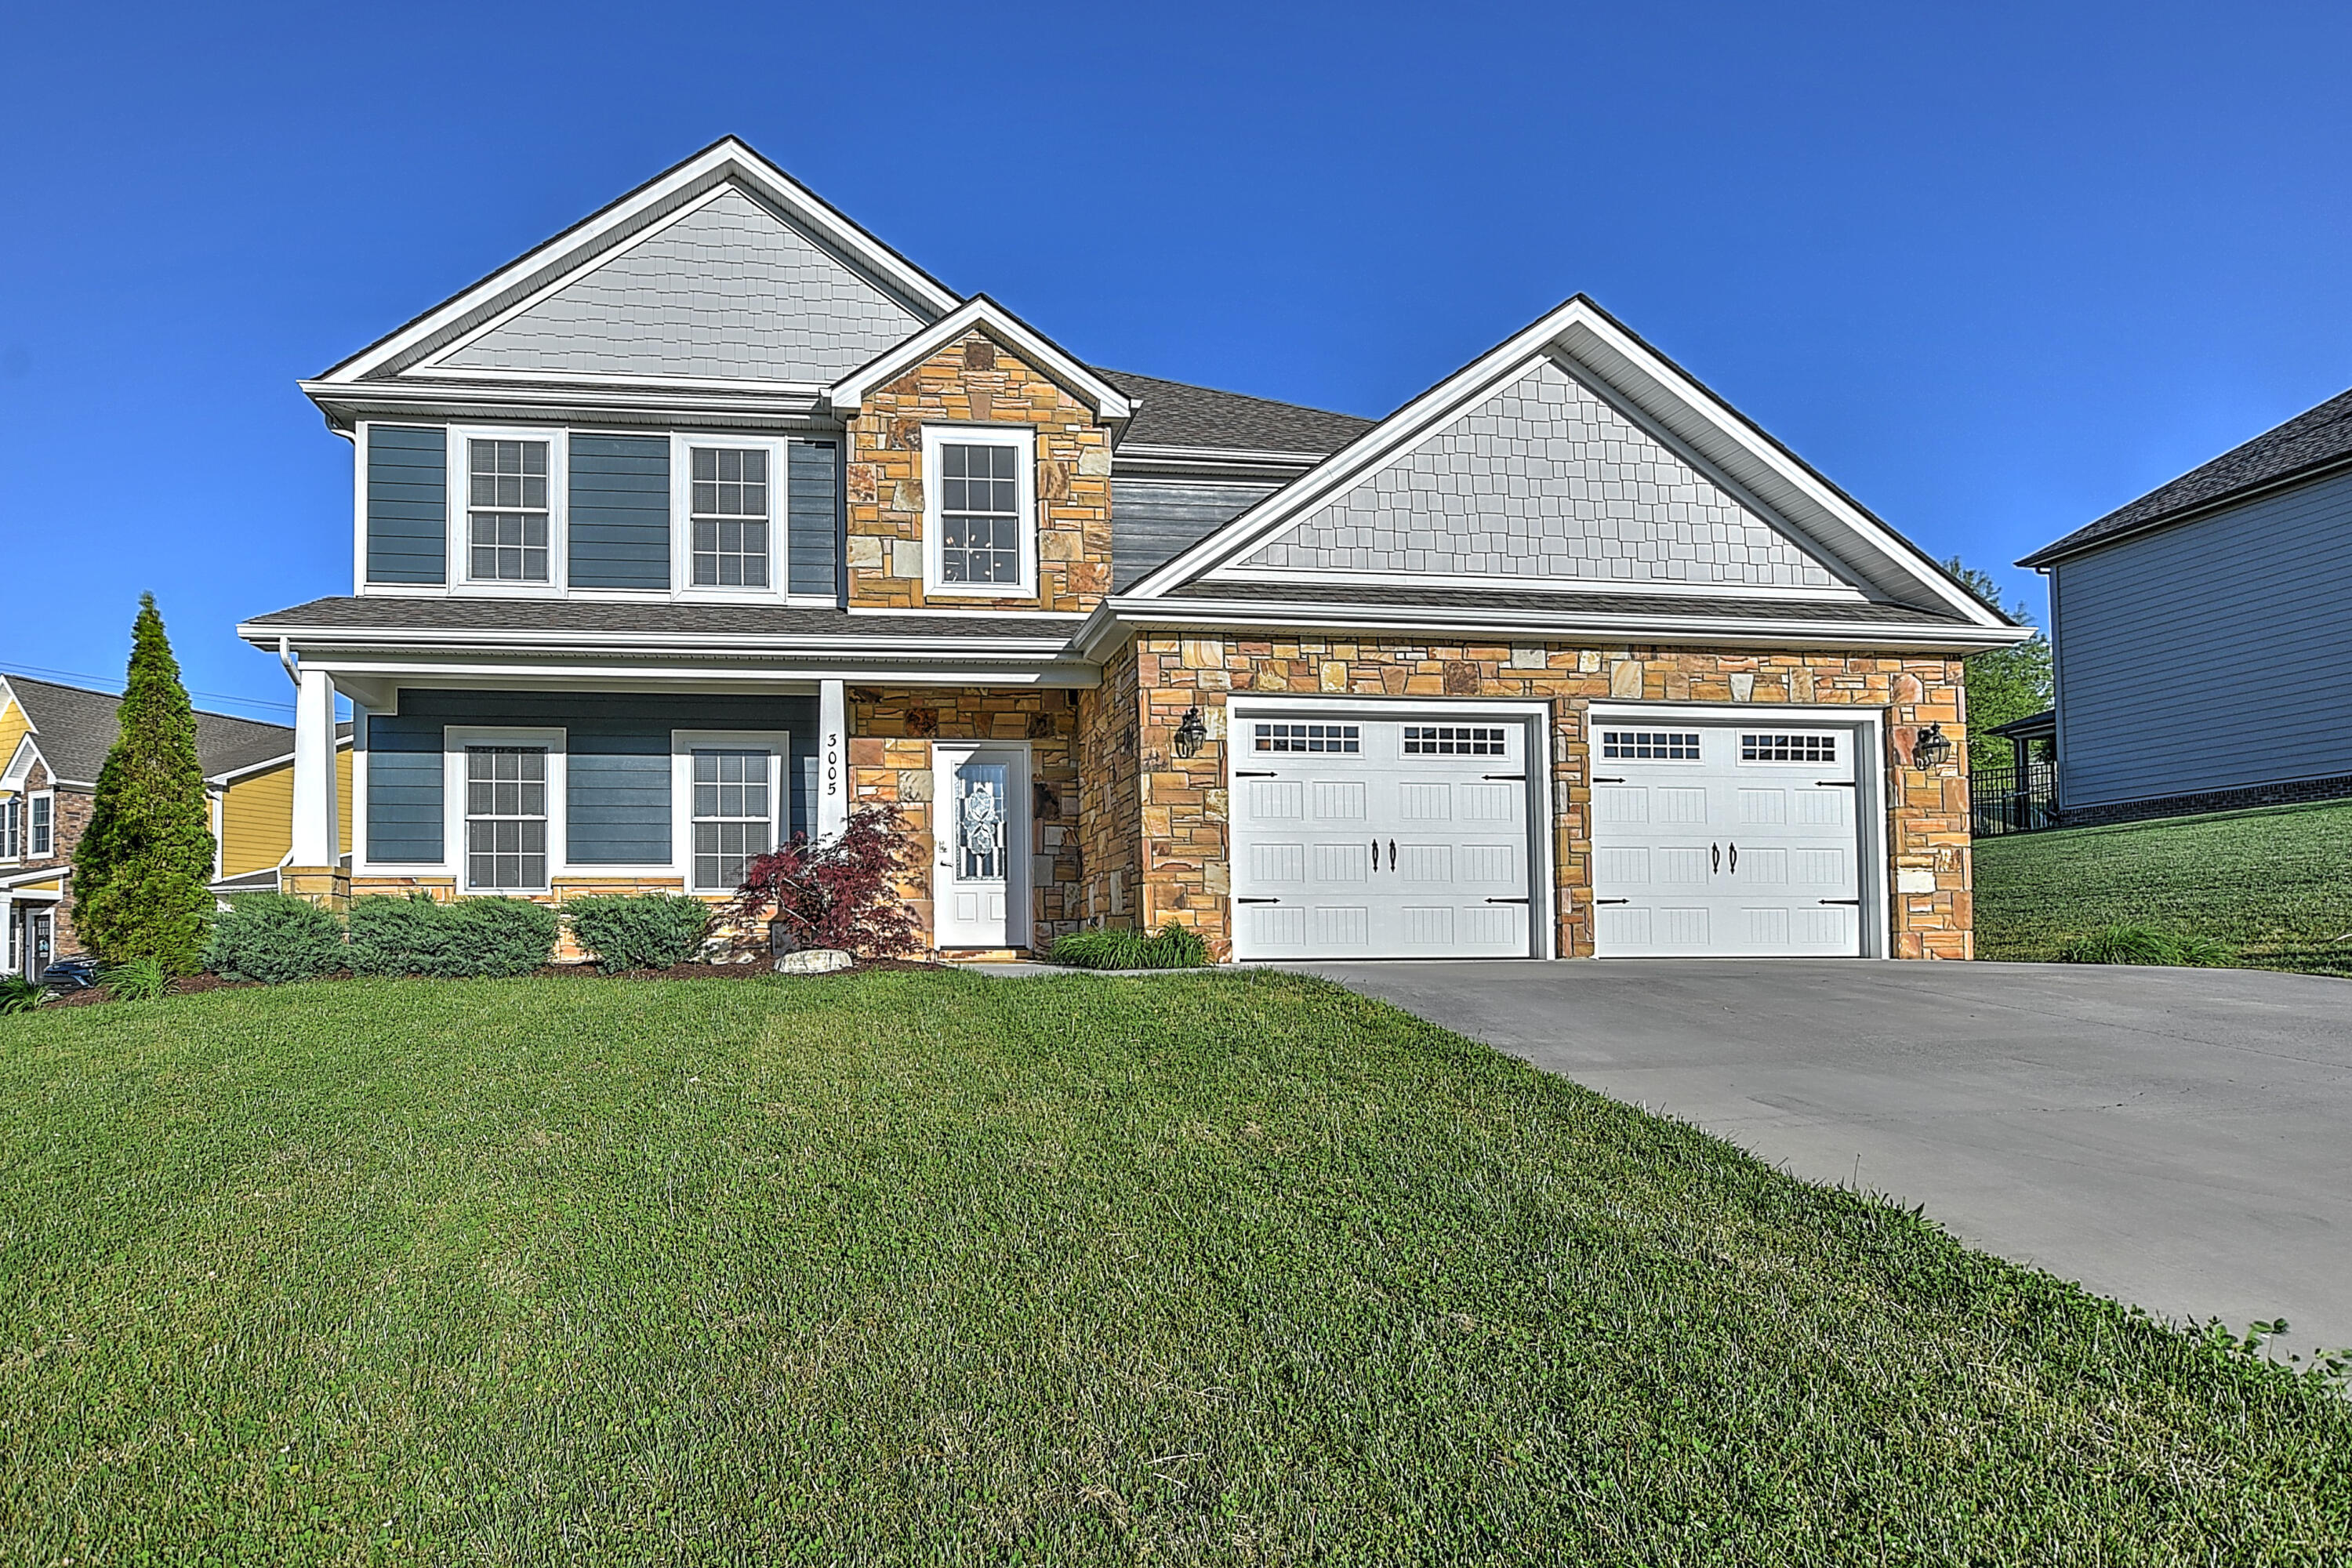 3005 Calton Hill, Kingsport, Tennessee 37664, 5 Bedrooms Bedrooms, ,3 BathroomsBathrooms,Single Family,For Sale,3005 Calton Hill,2,9921793